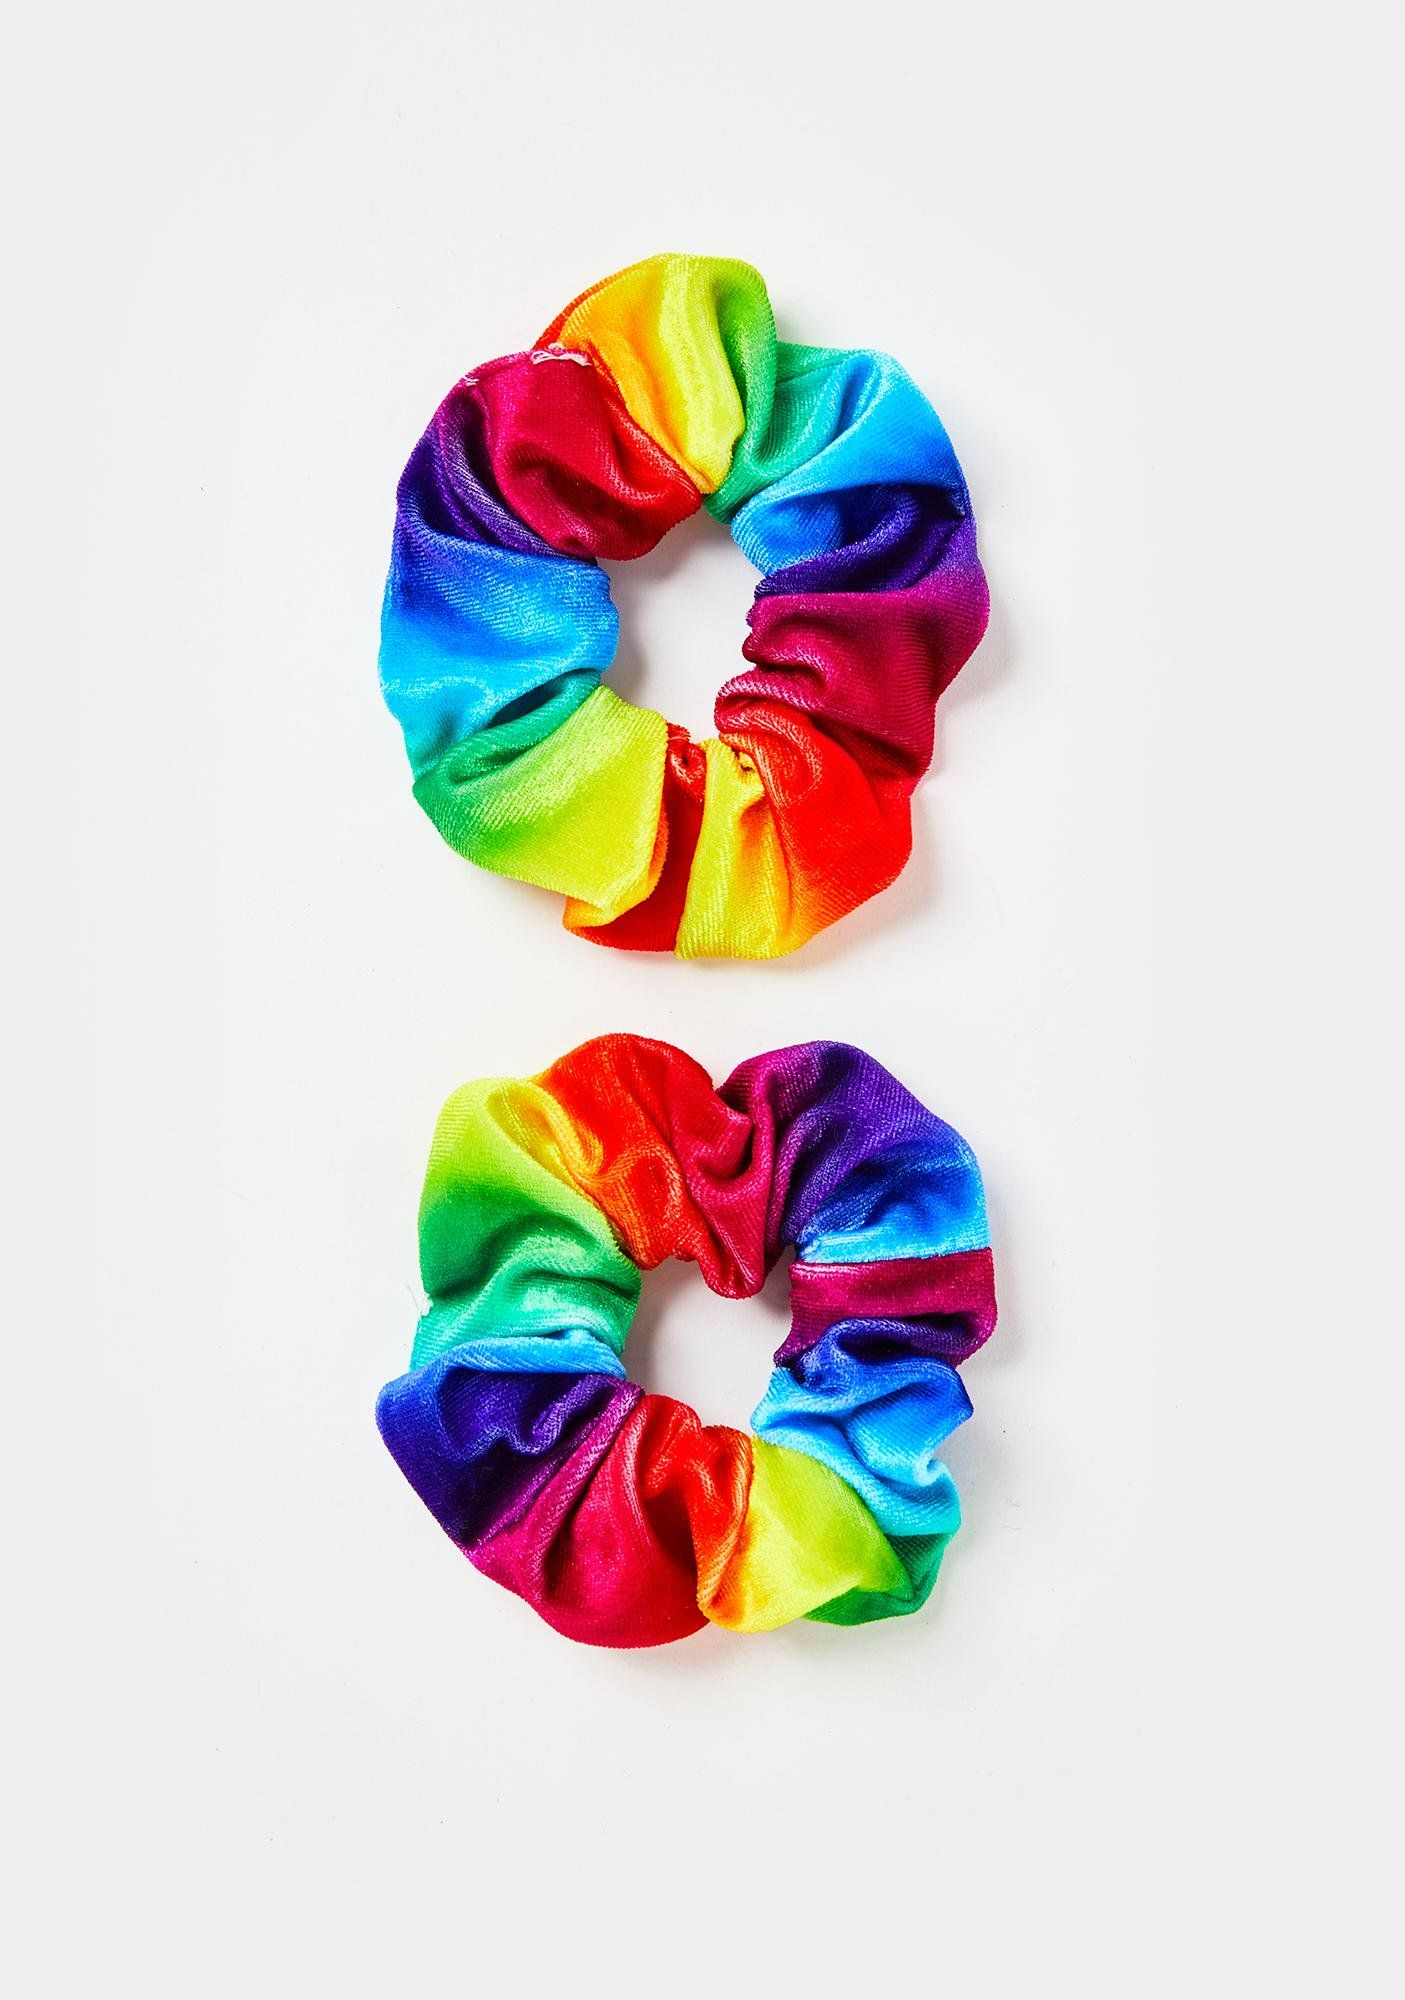 Kinetic Cartwheel Rainbow Scrunchies #hairscrunchie